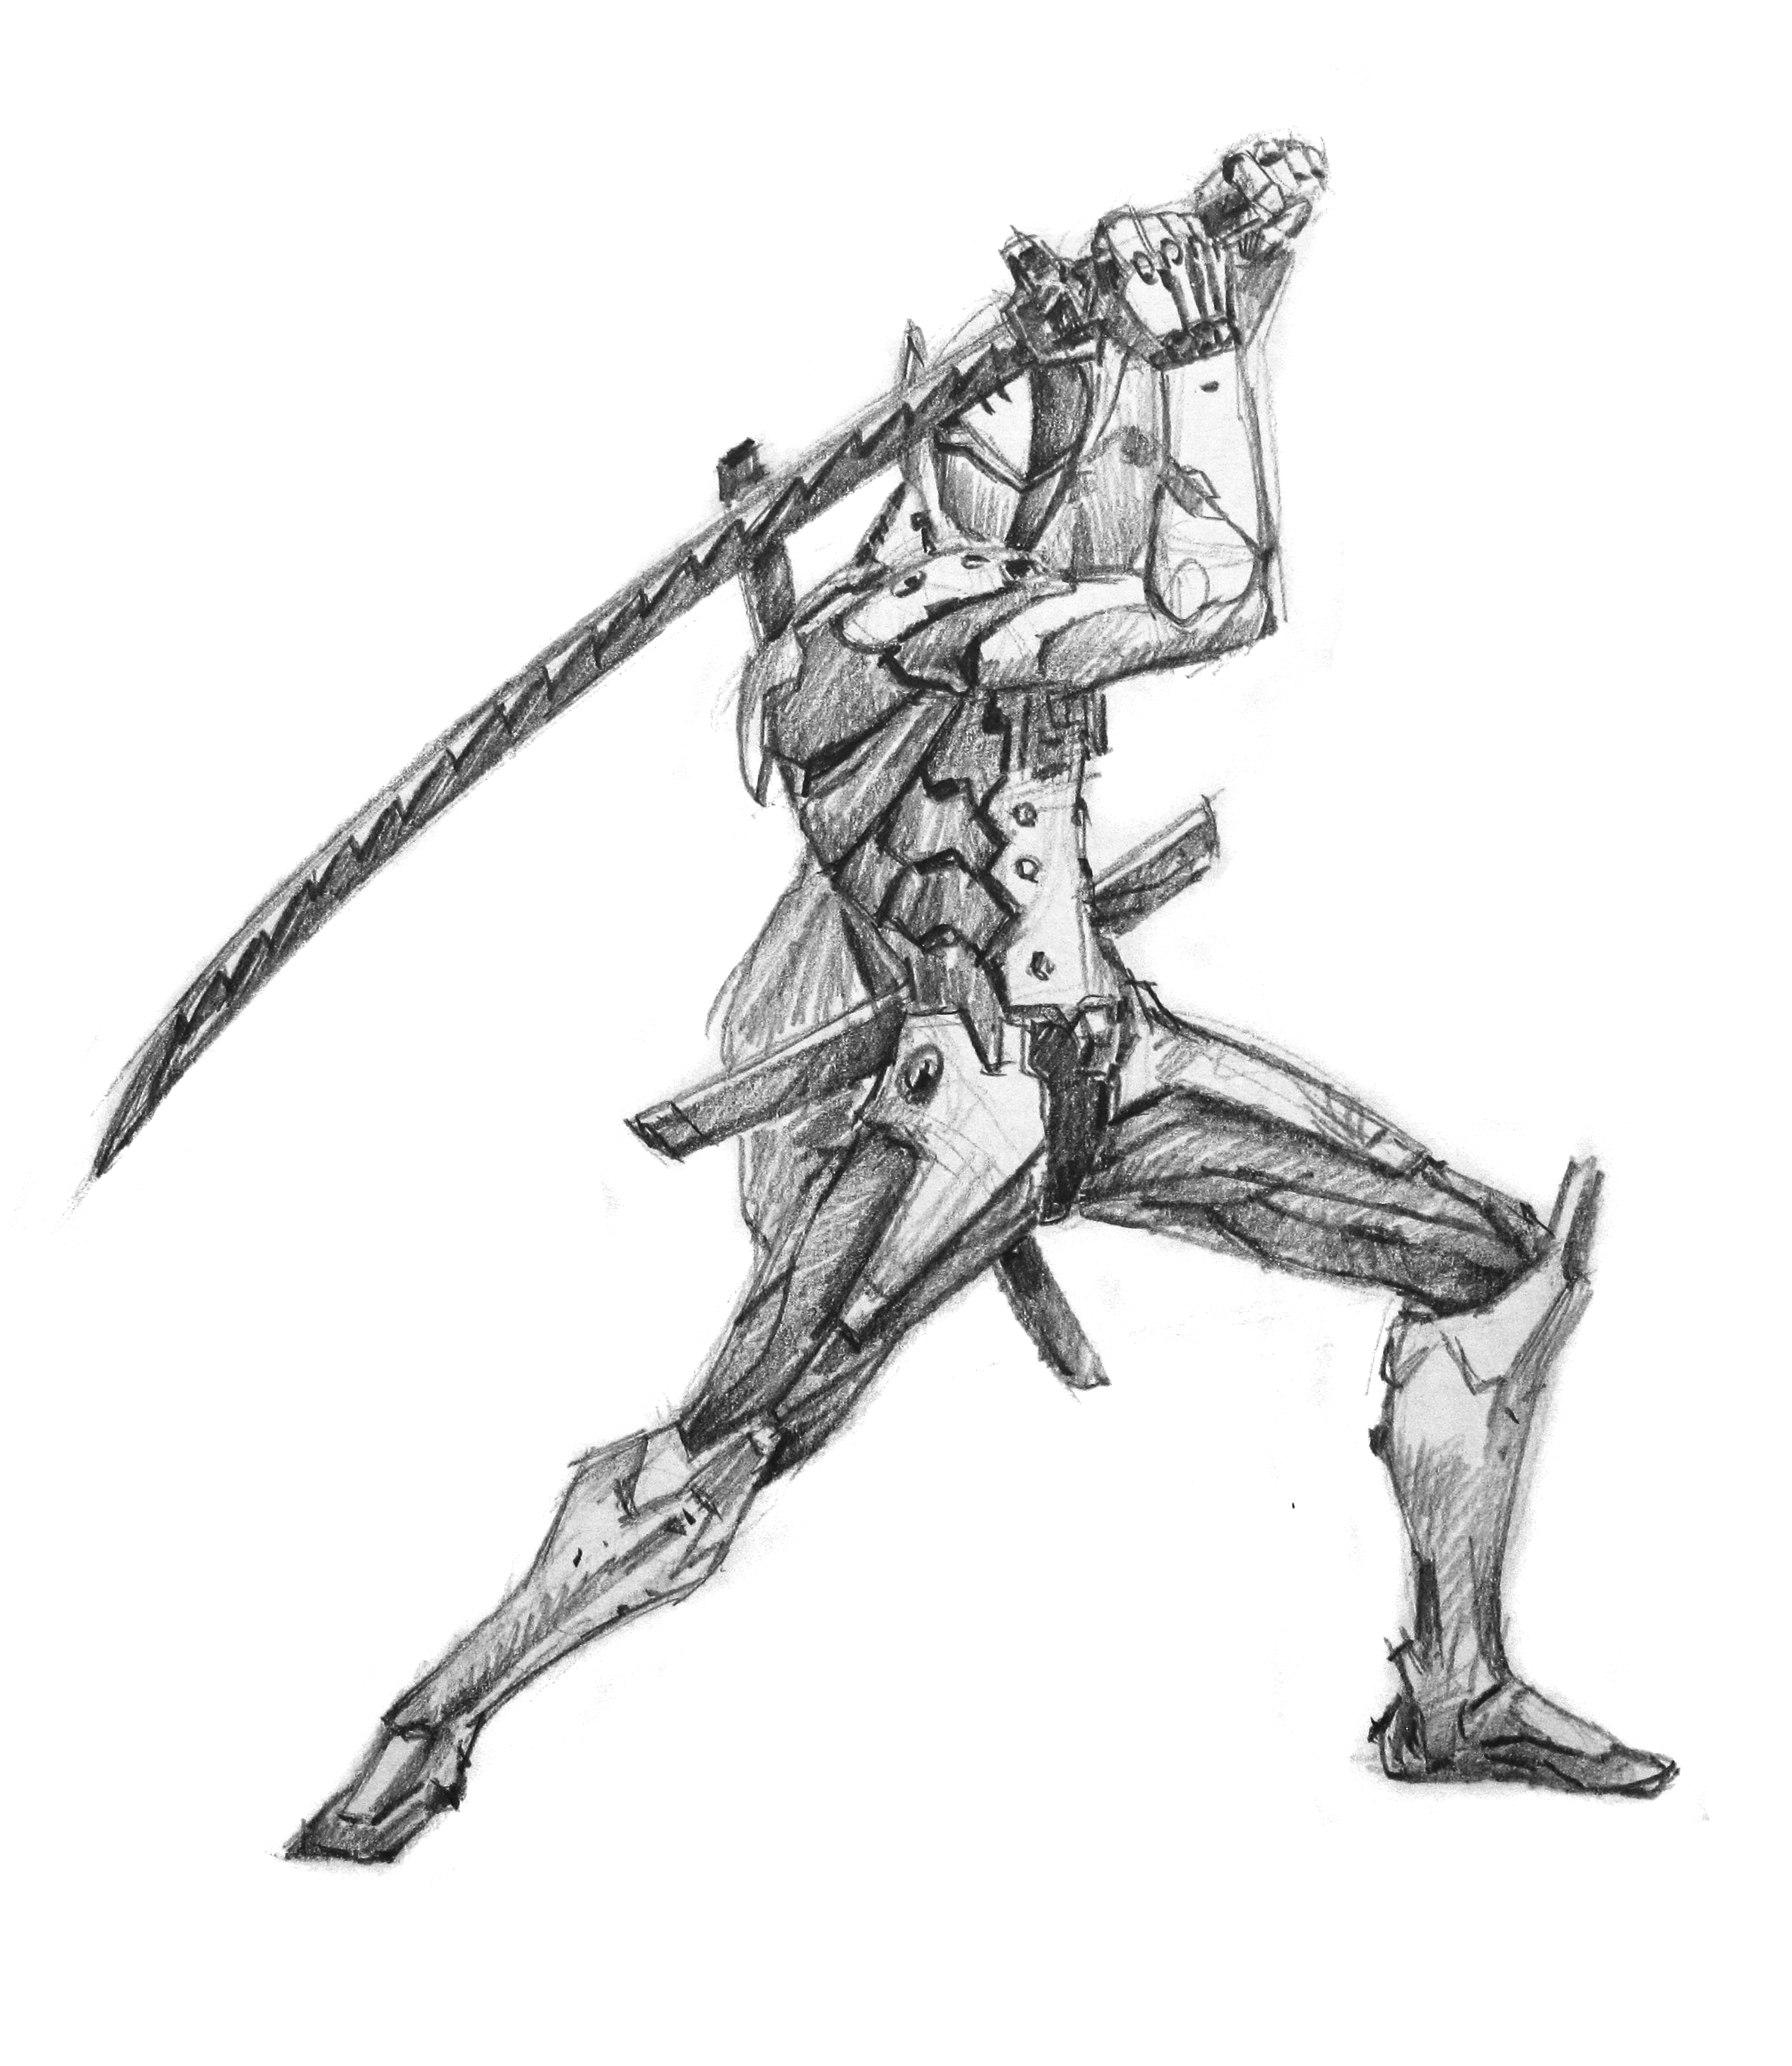 D Line Drawings You Tube : Drawings on youtube art of wei